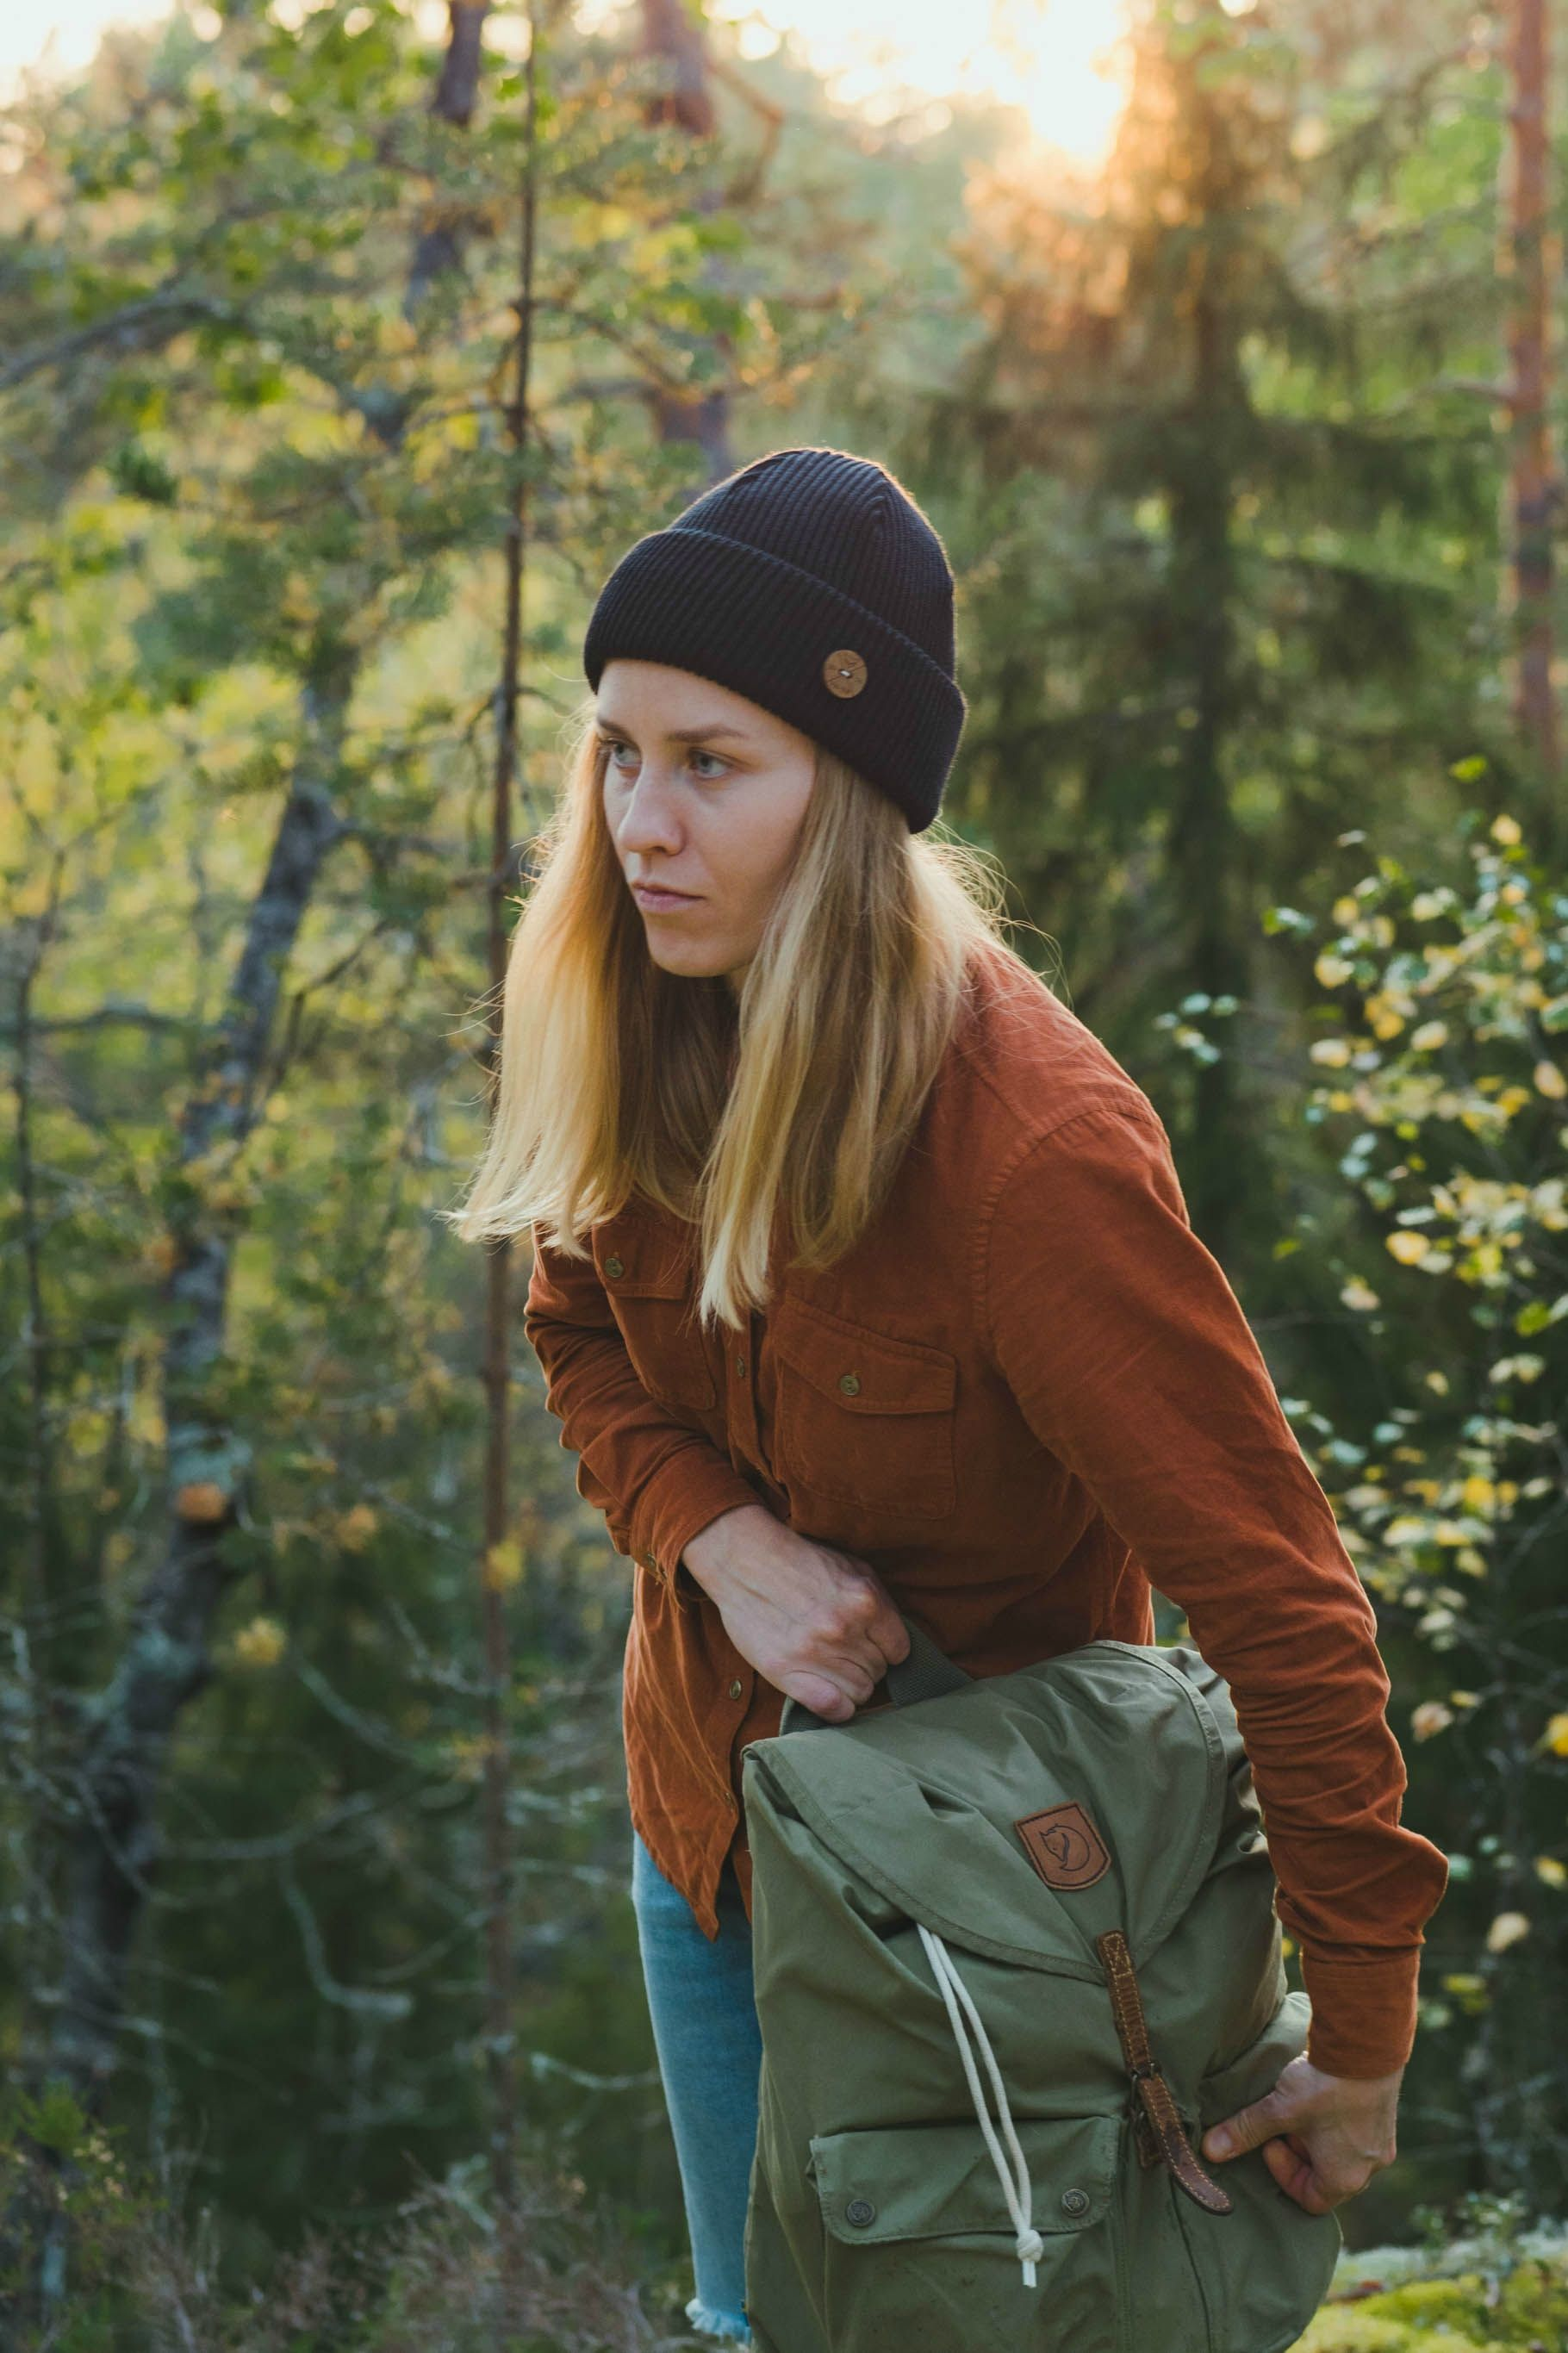 9282d37cb Timberjack Beanie | Hipster Hiking Outfits | Hiking fashion ...